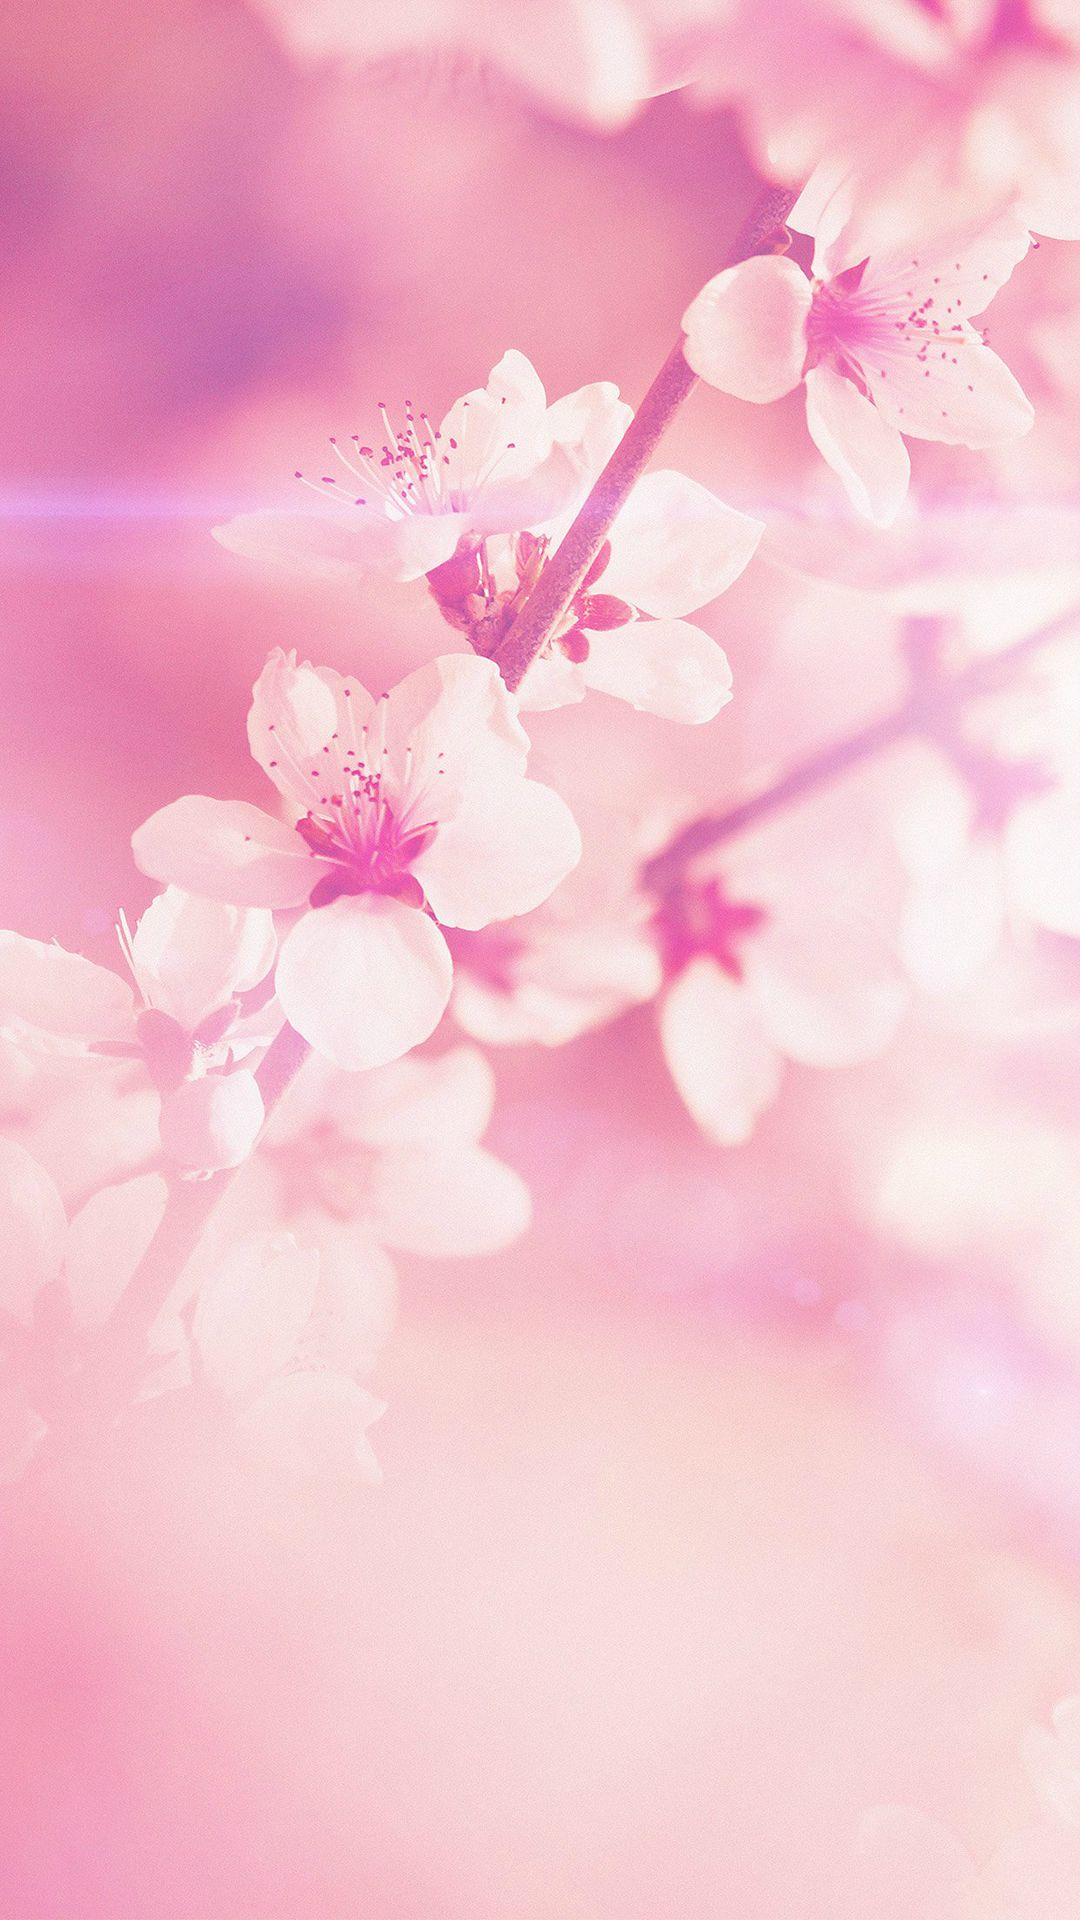 Spring flower pink cherry blossom flare nature iphone 6 plus spring flower pink cherry blossom flare nature iphone 6 plus wallpaper mightylinksfo